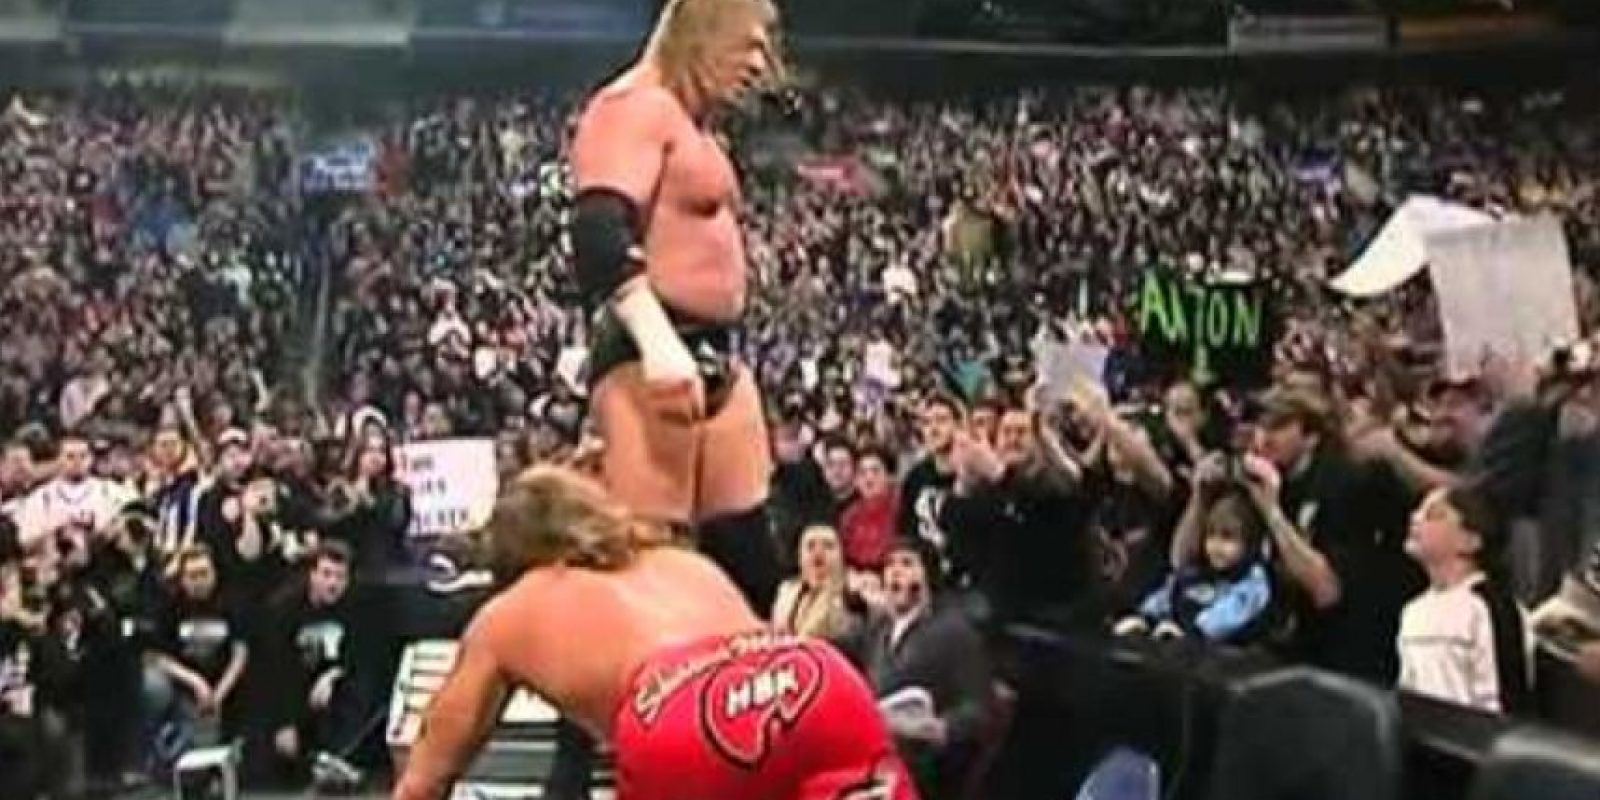 Shawn Michaels vs Triple H en Royal Rumble 2004 Foto: WWE